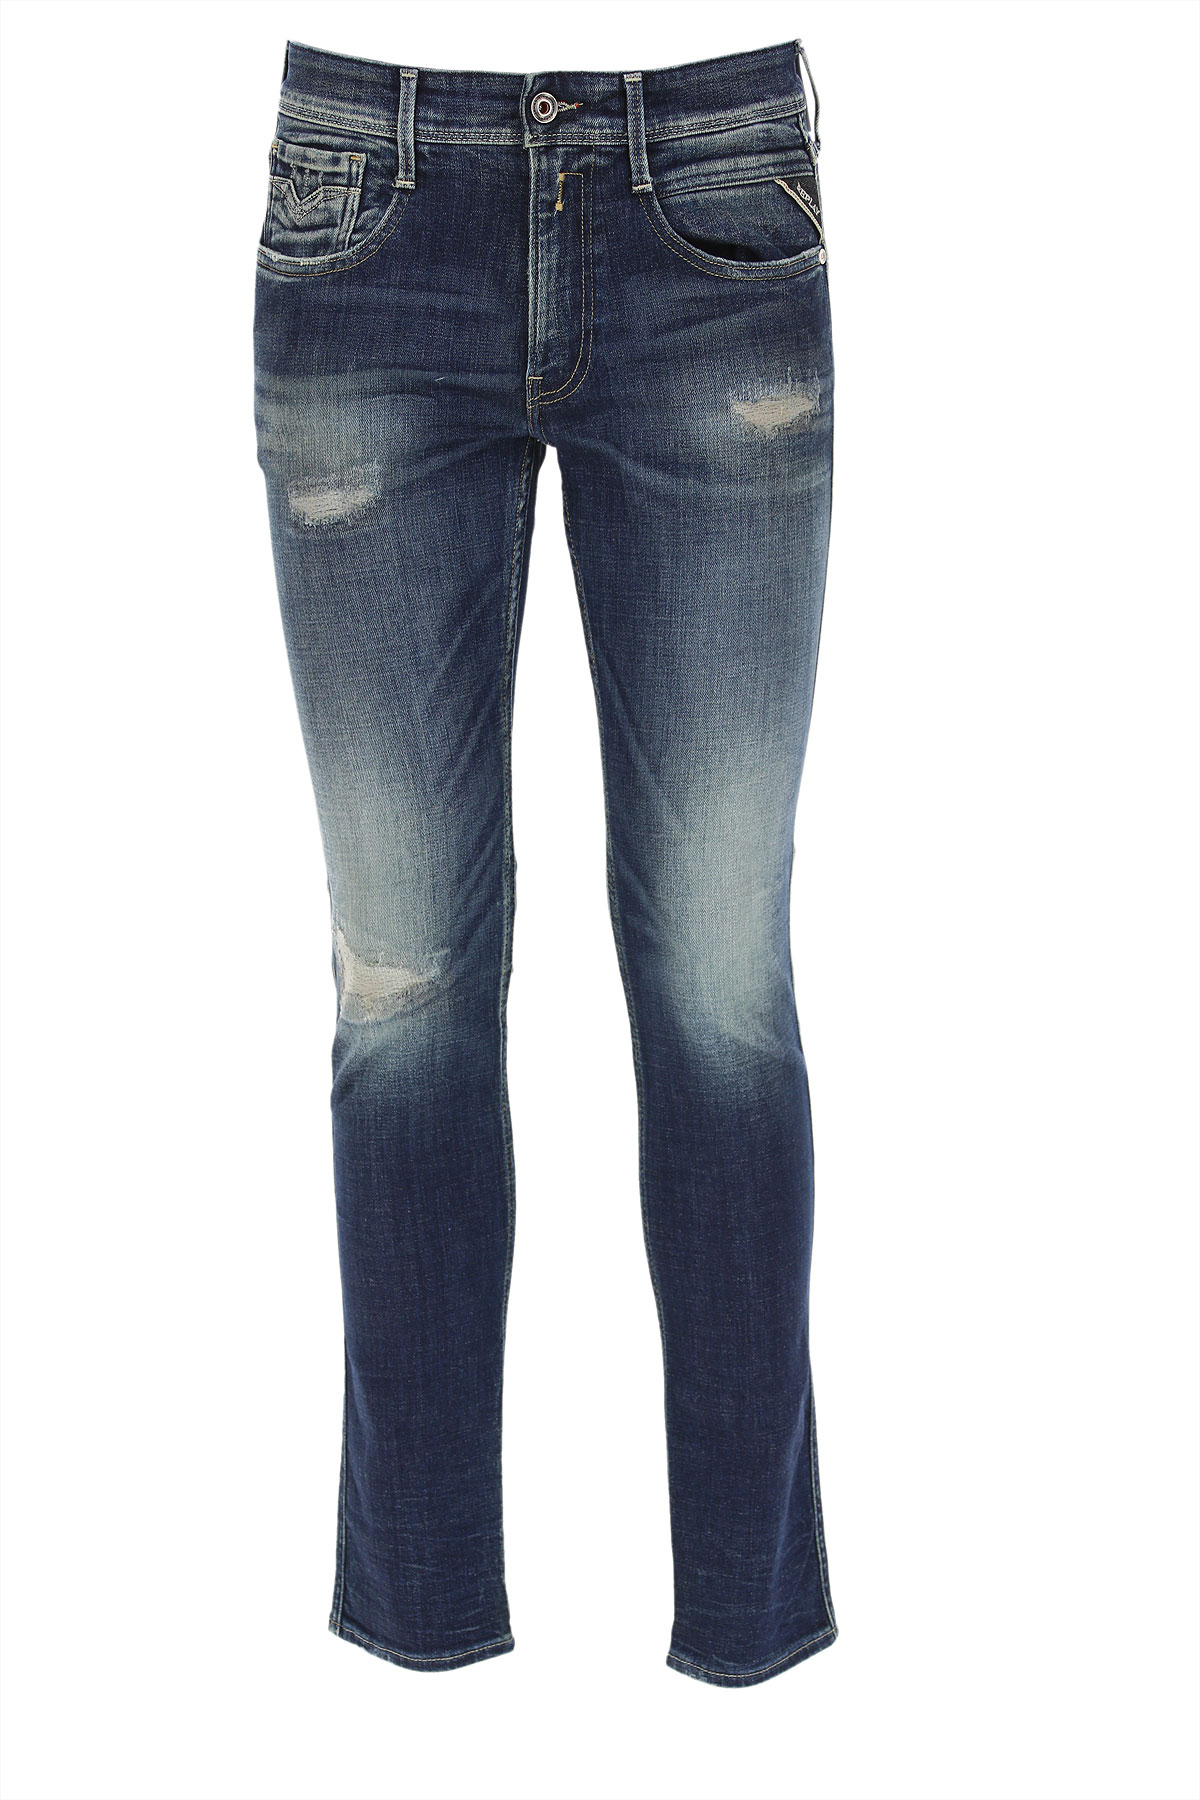 Replay Jeans On Sale, Blue Denim, Cotton, 2019, 30 31 32 33 34 36 38